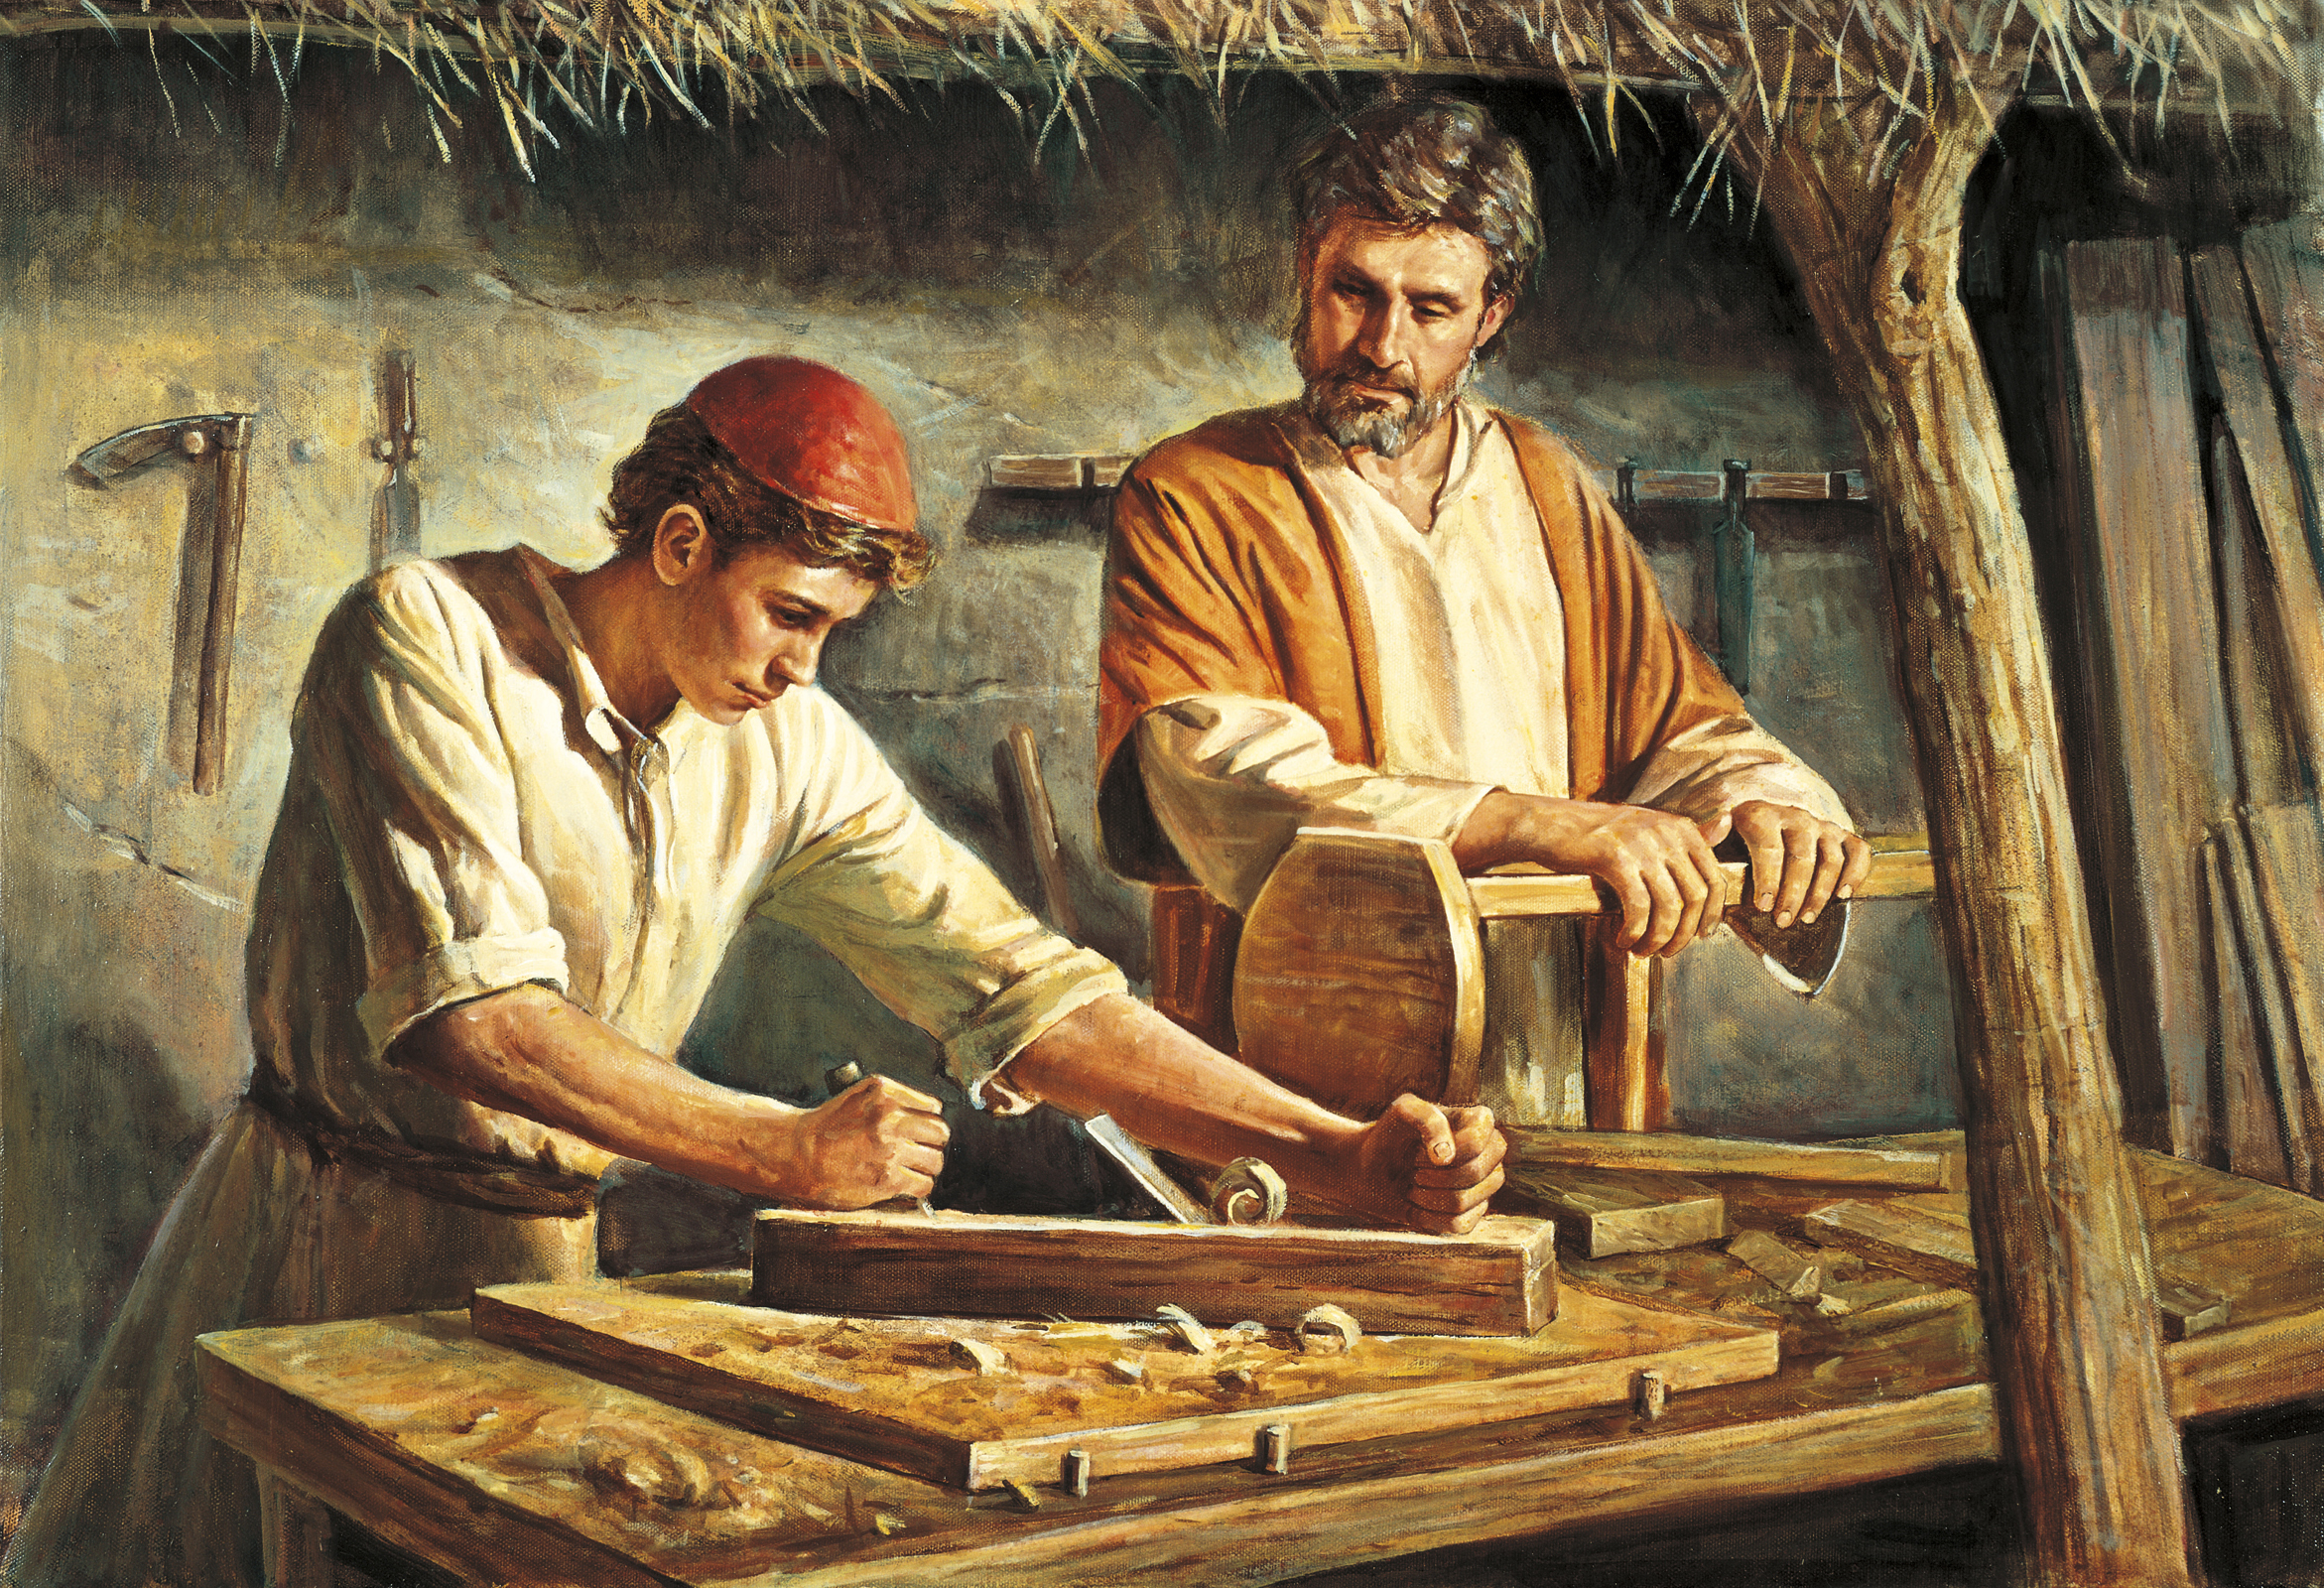 Image result for the carpenter's son, Jesus, art, pictures